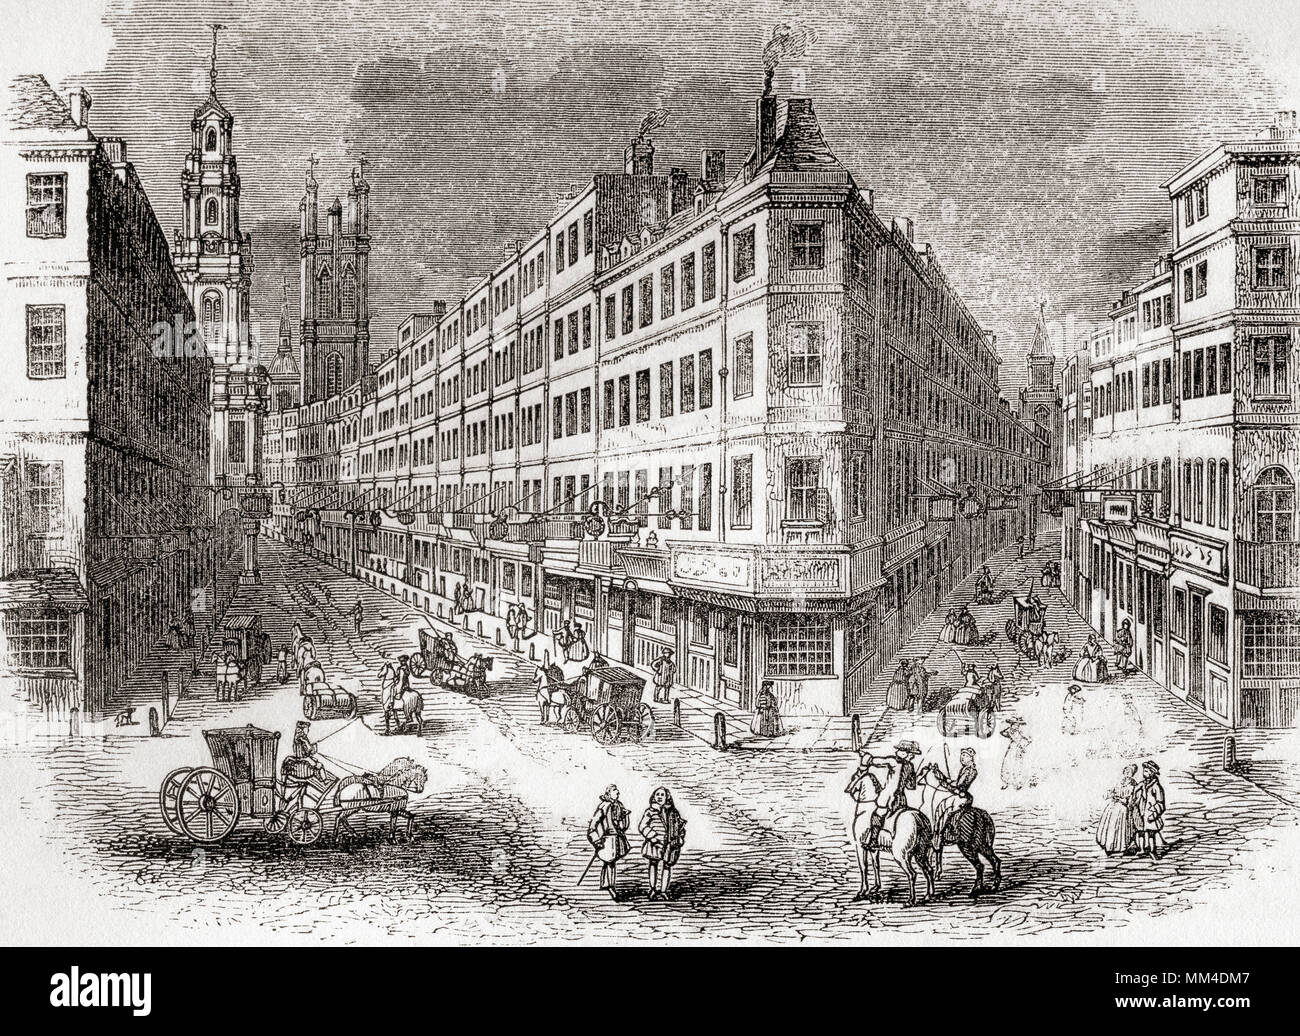 Cornhill, The Exchange and Lombard Street, London, England in the mid 19th century.  From Old England: A Pictorial Museum, published 1847. - Stock Image